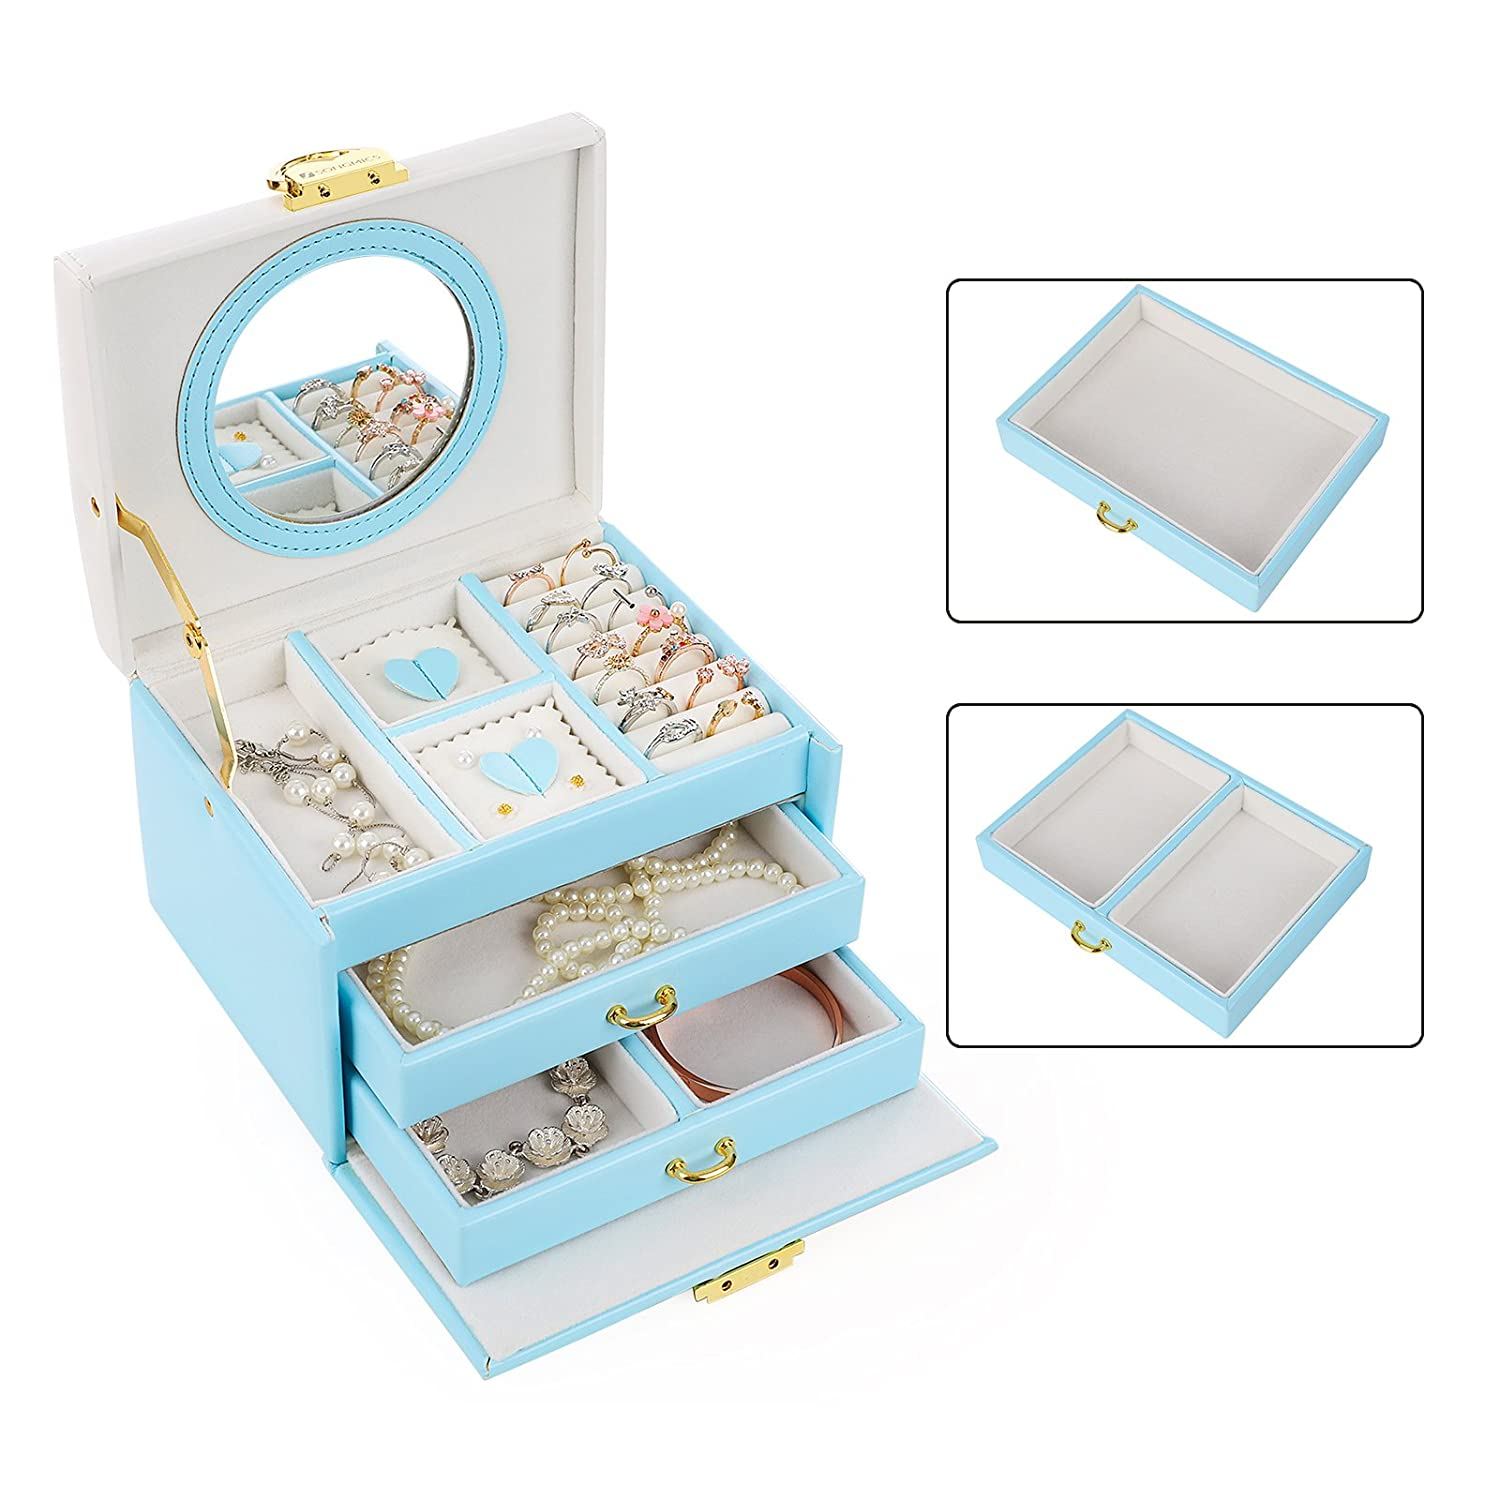 SONGMICS Jewelry Box with Bowknot Mirrored Compact Travel Case Gift for Kids Girls and Women Blue and White UJBC115Q